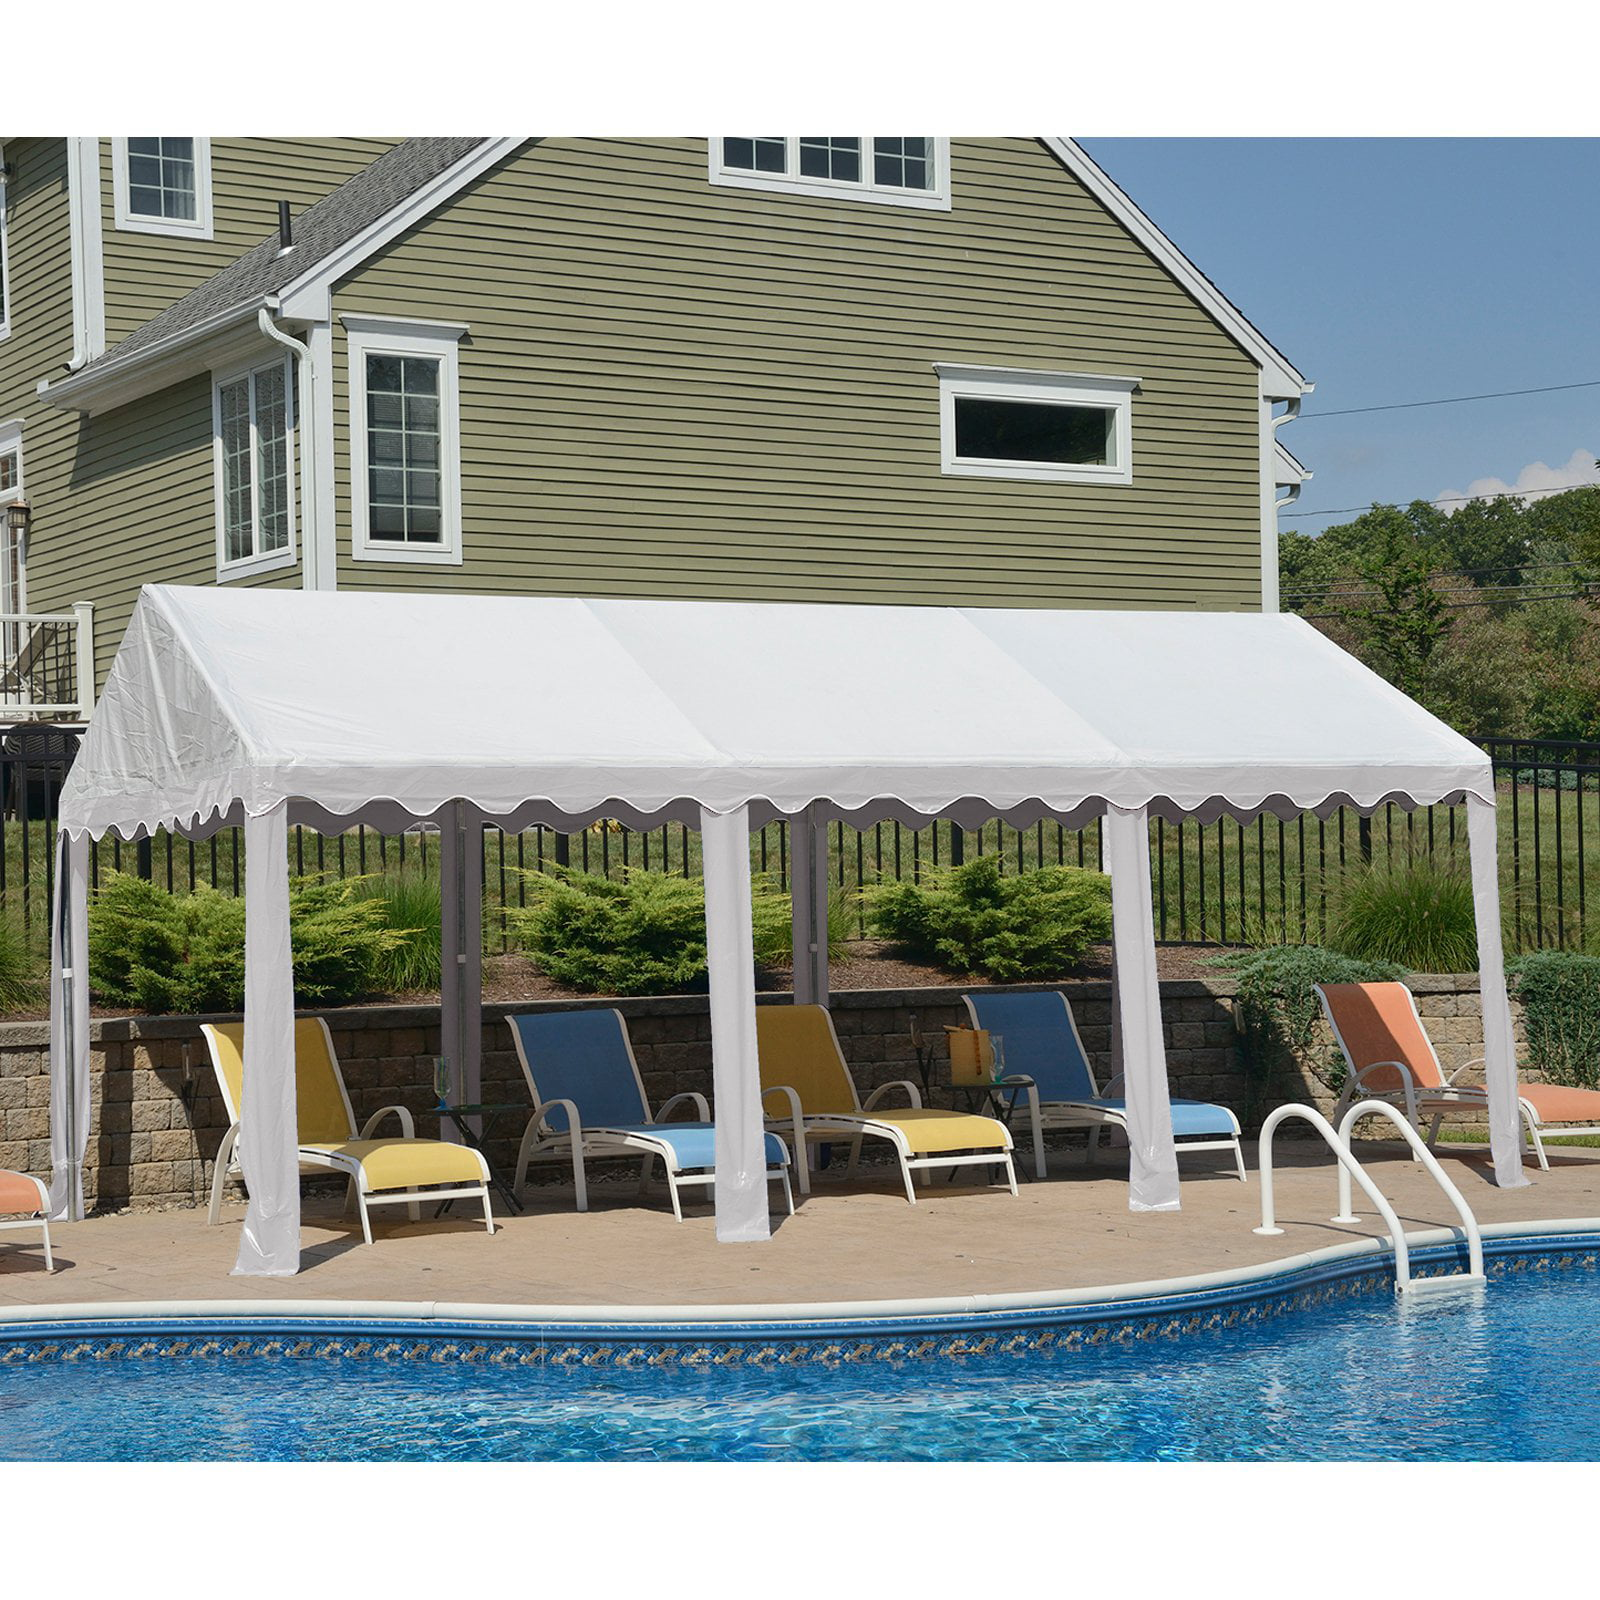 Party Tent, 10' x 20' 3m x 6m, White by ShelterLogic Corp.